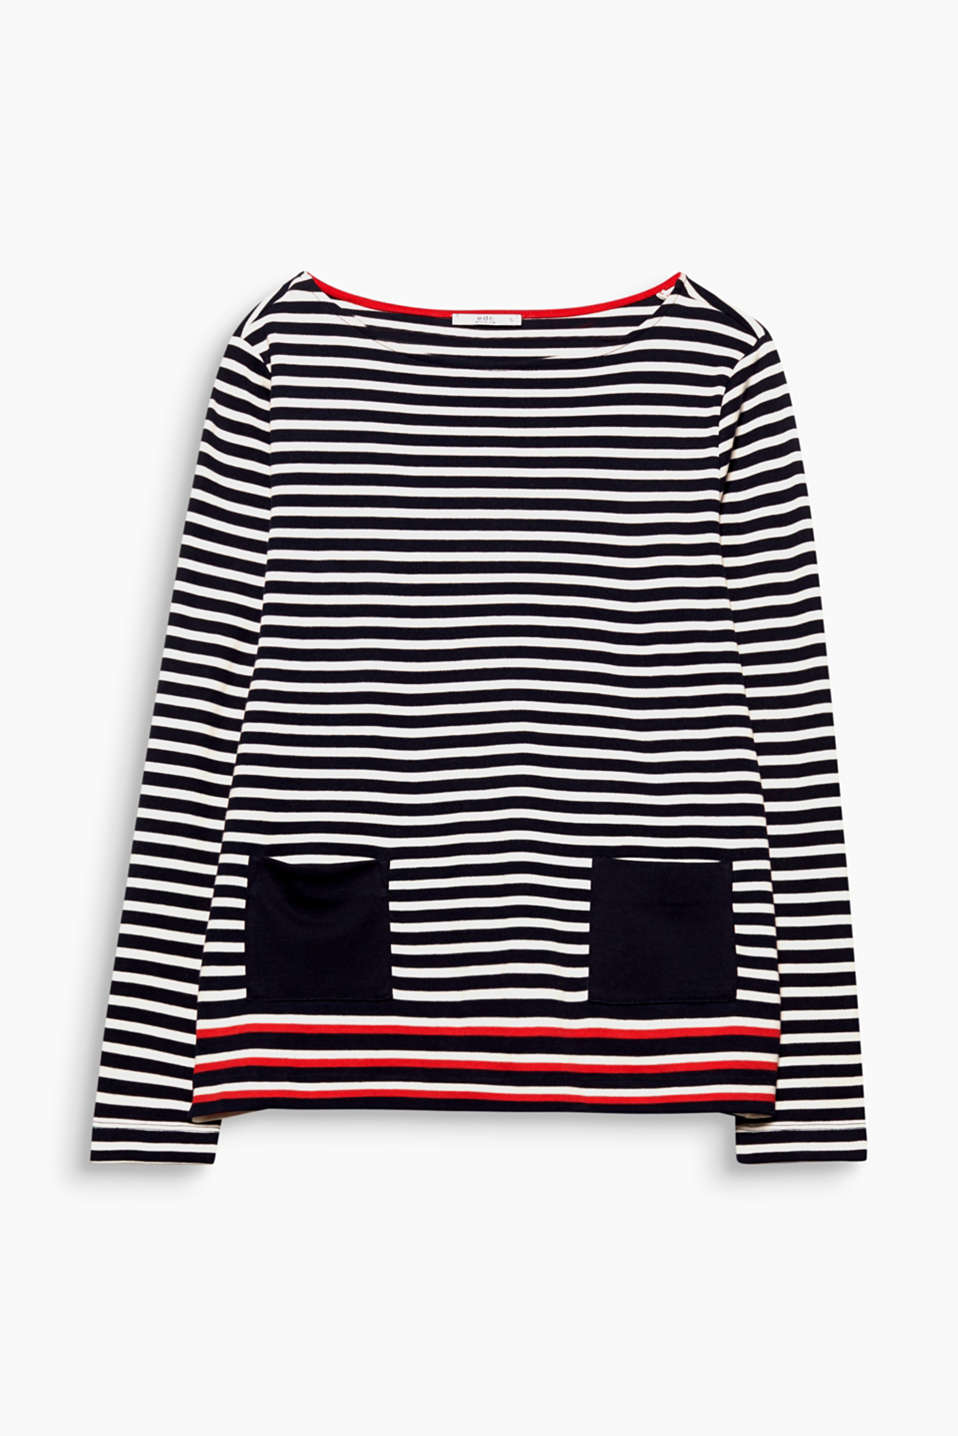 Super soft with trendy stripes: This long sleeve top in a stylish A-line design with front pockets is all about contrasts!